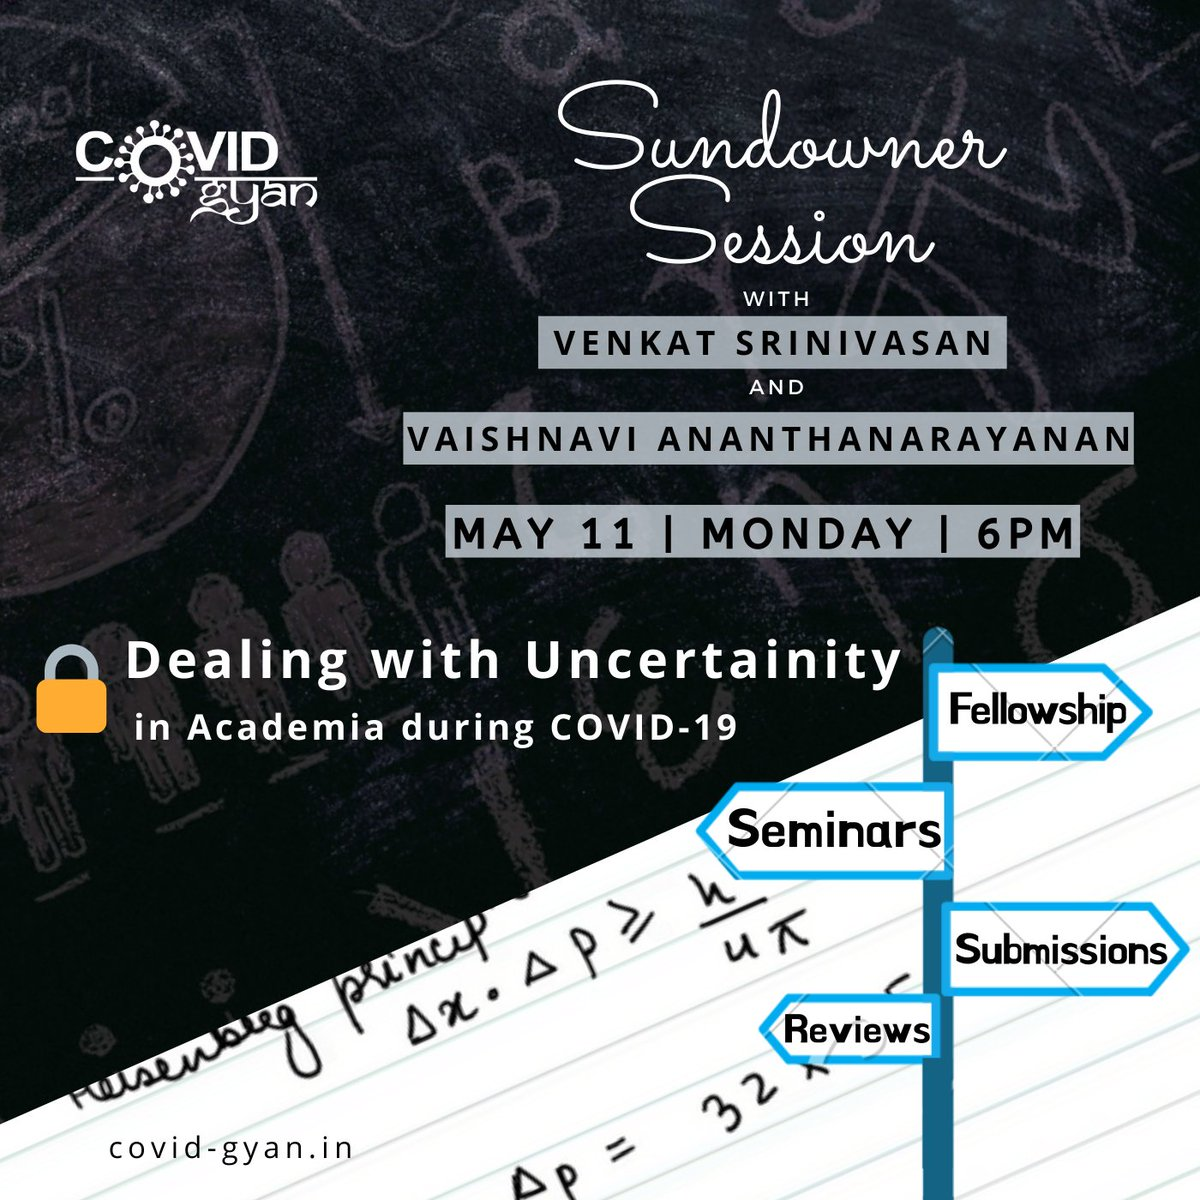 Join the next #SundownerSession, with @vns2 and @VaishAnanth as they talk about Dealing with Uncertainty in Academia during #COVID19. Extra stressed about deadlines, reviews, your research, or submissions? Share your stories! Register here: zoom.us/webinar/regist… #CovidGyan